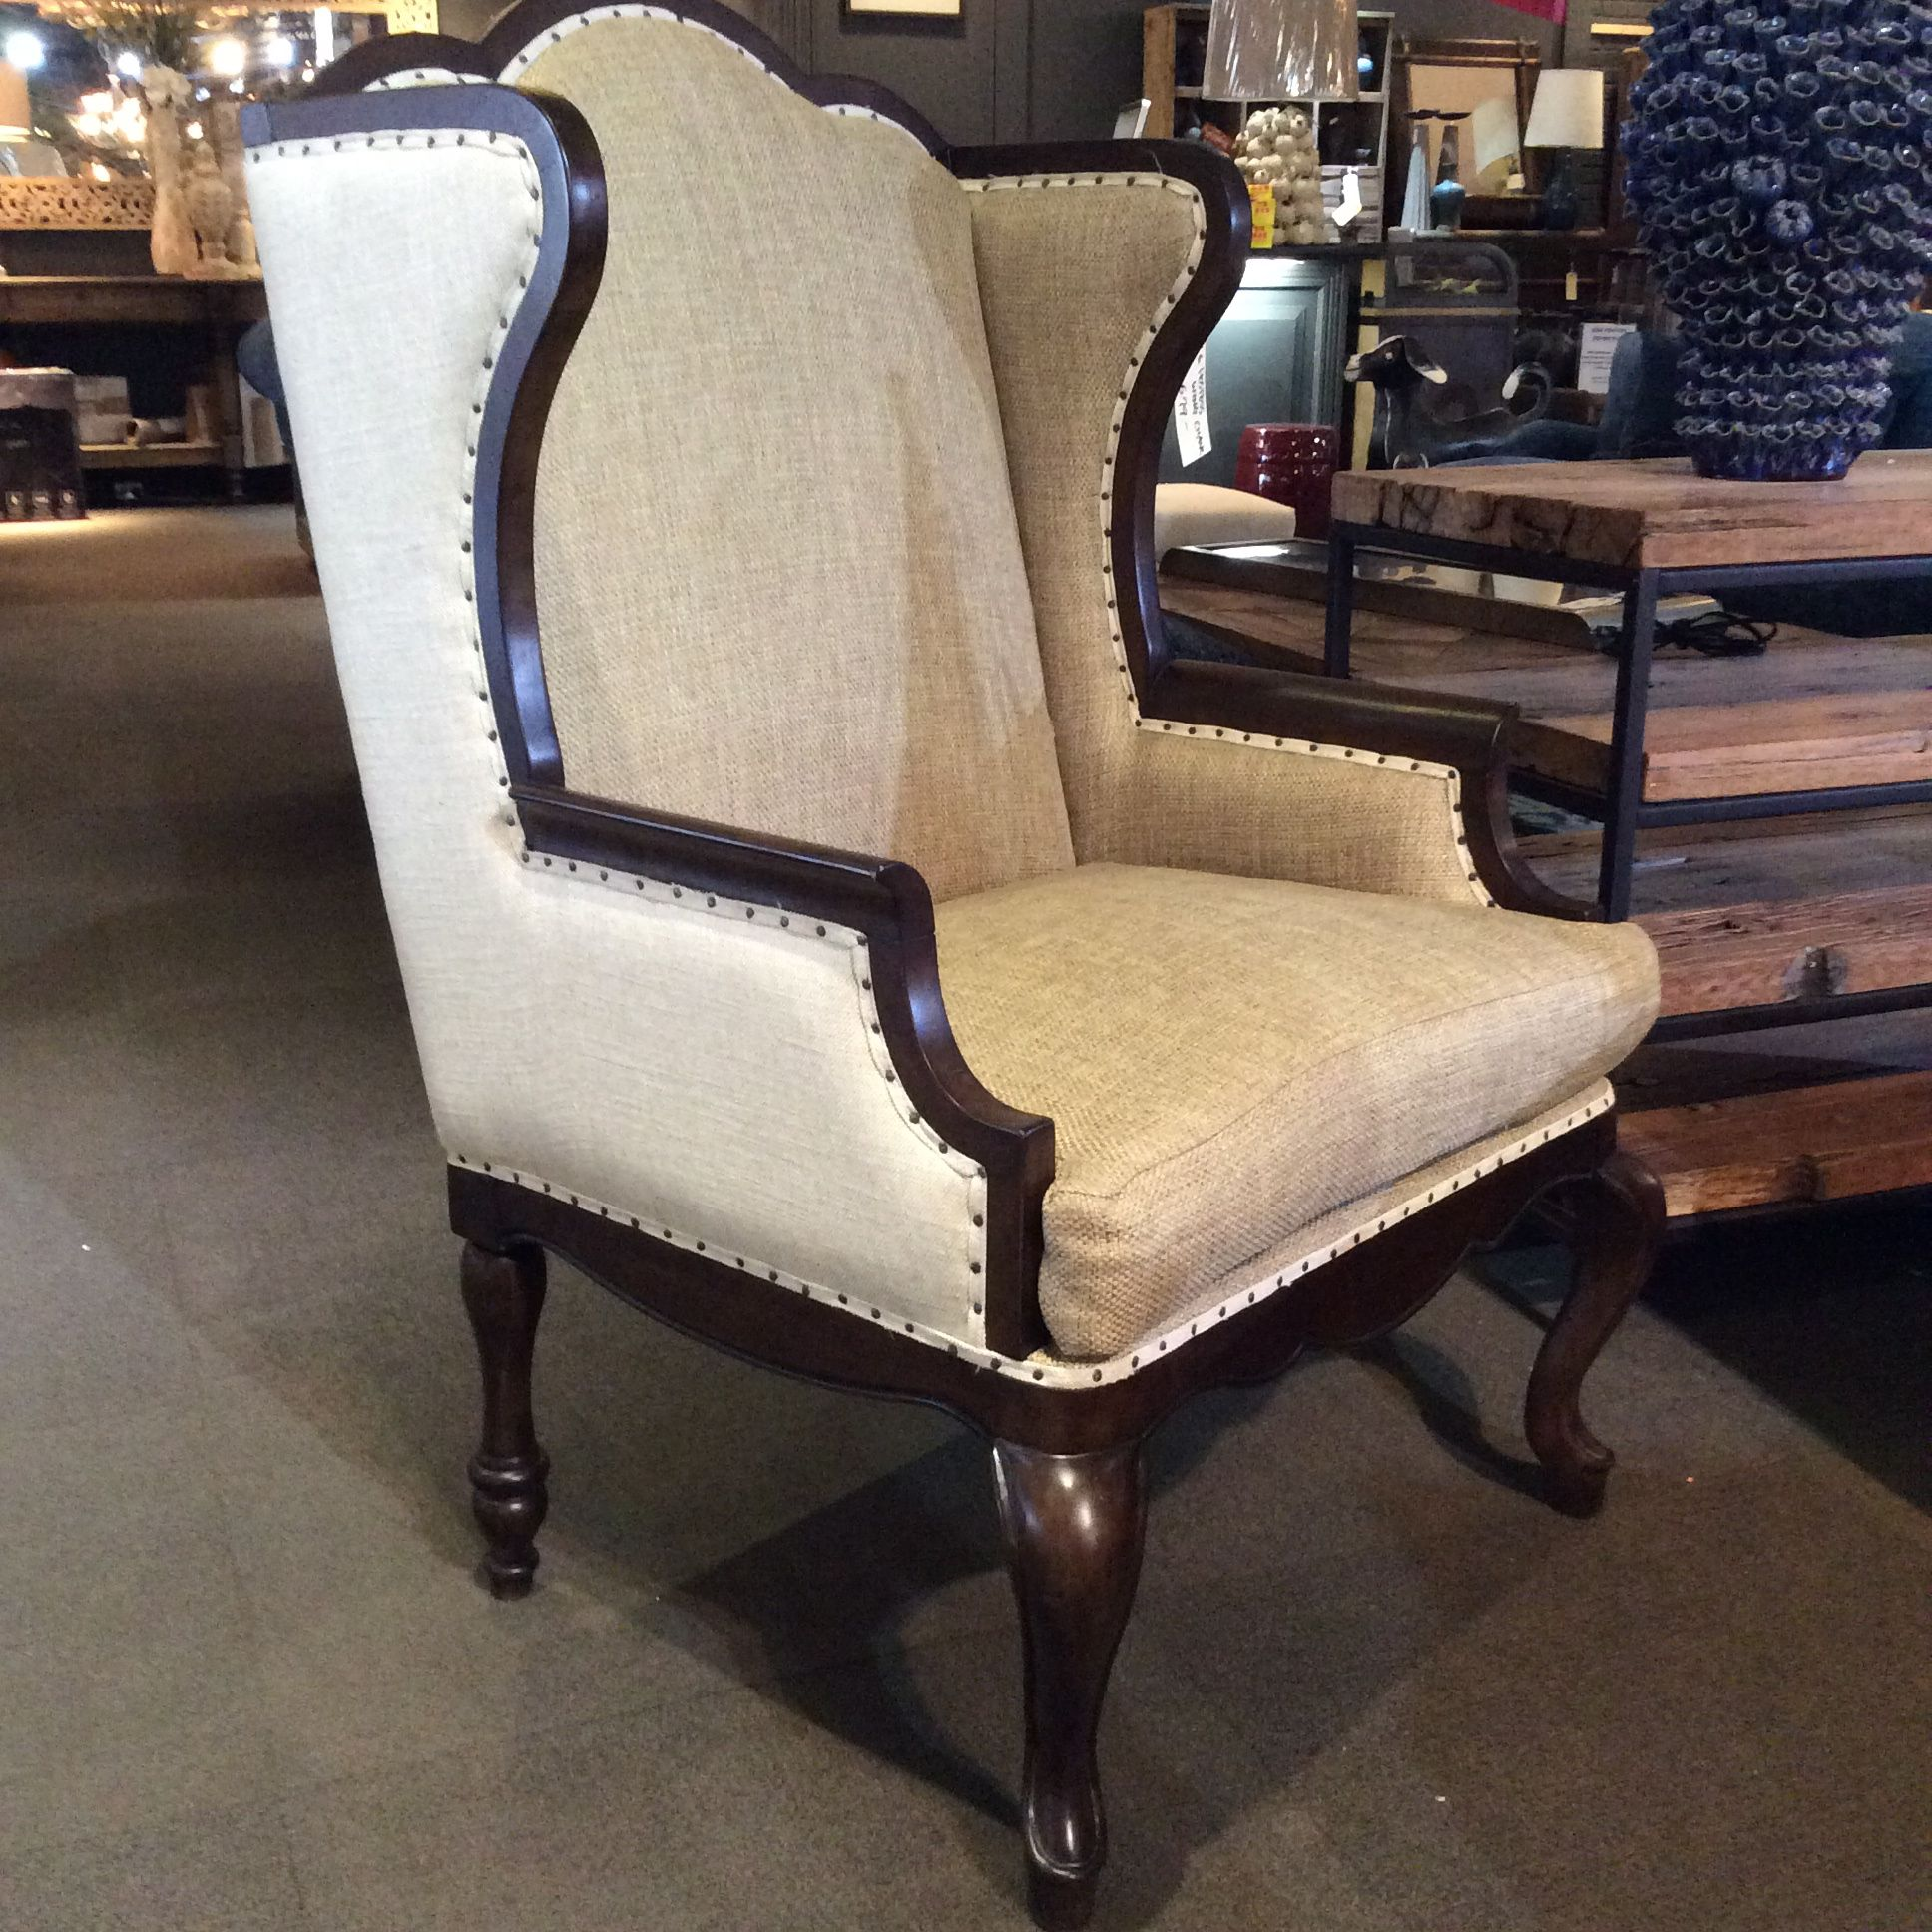 Curved Wood Bird Fabric High Back Accent Chair: The Host And Hostess Chair's High Curved Back And Full